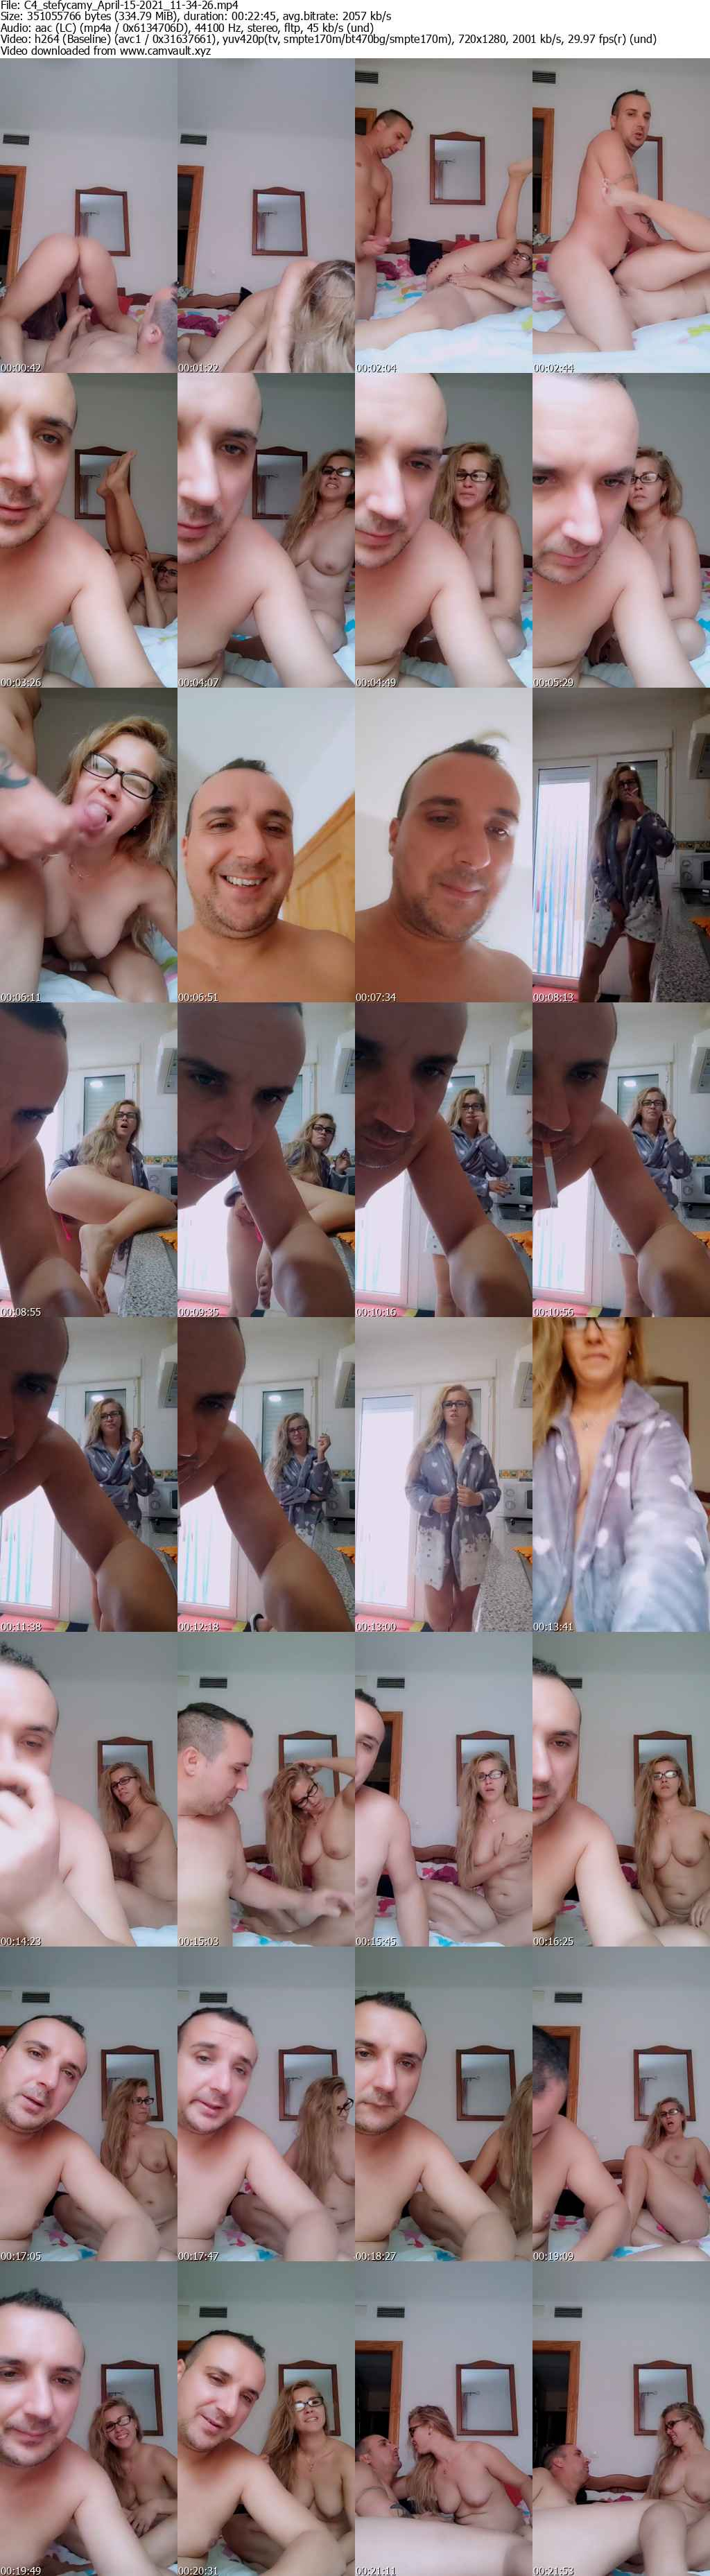 Video preview for model stefycamy